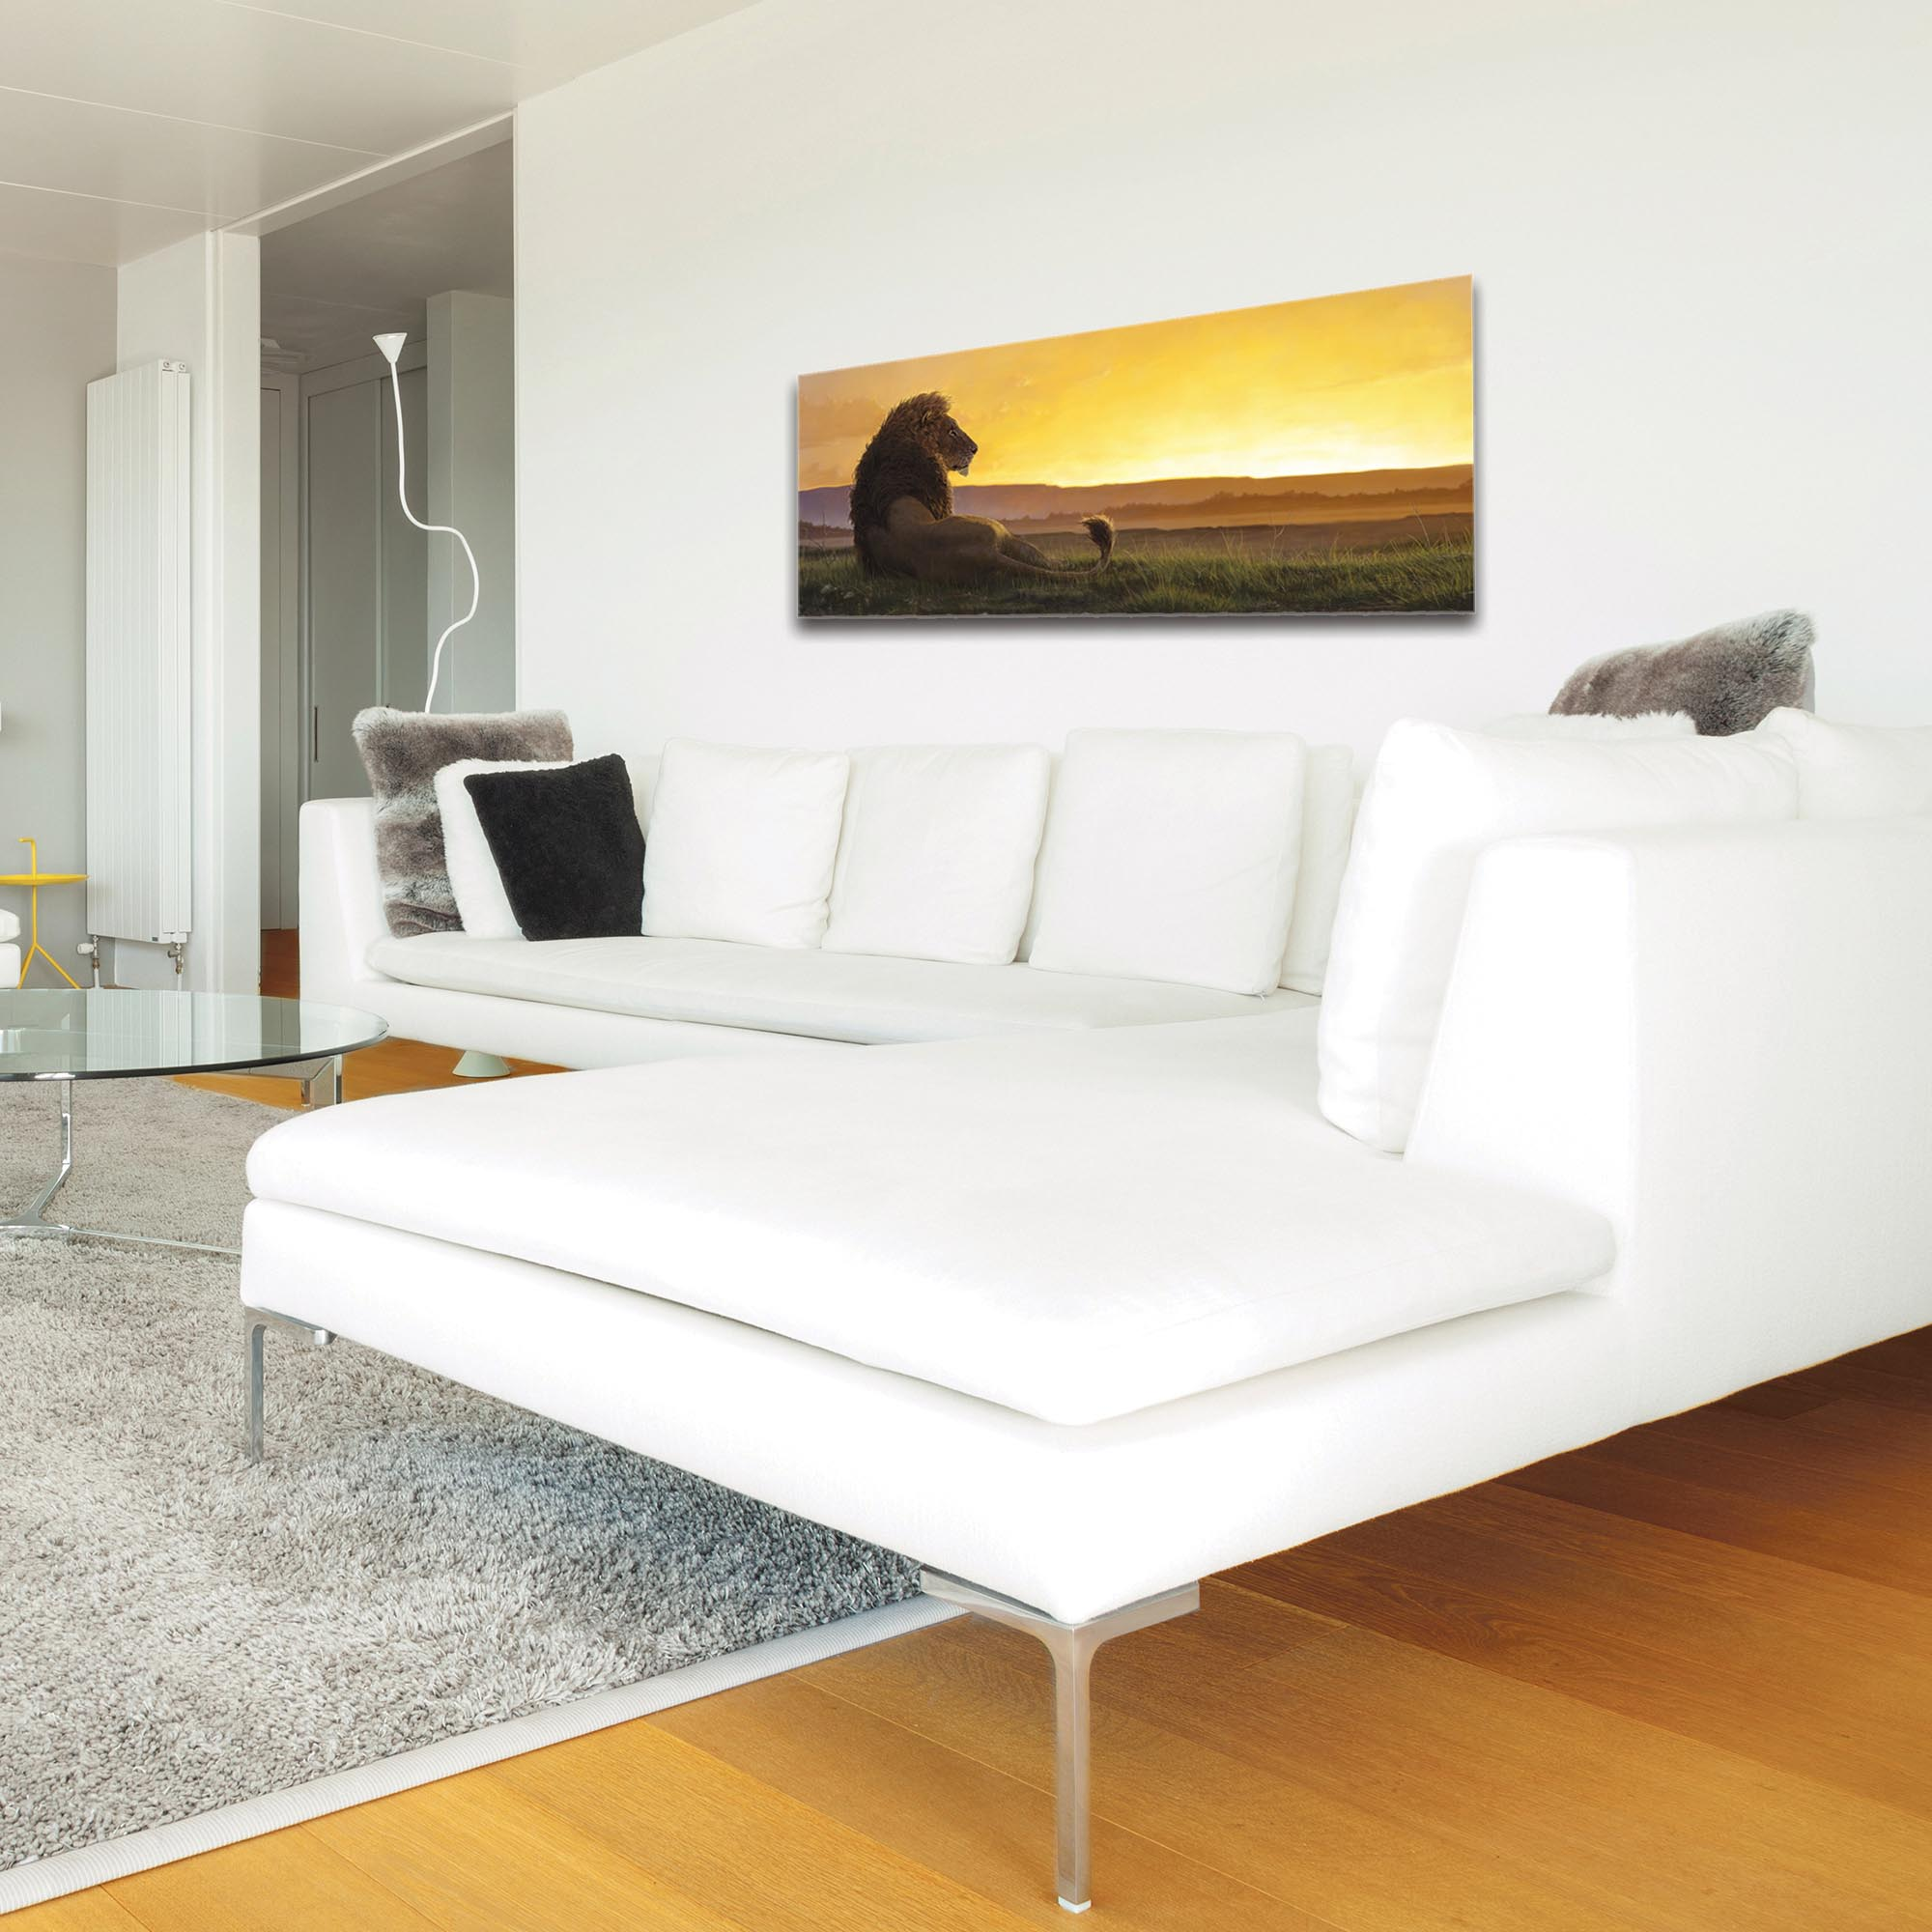 Expressionist Wall Art 'Lion in the Sun' - Wildlife Decor on Metal or Plexiglass - Image 3